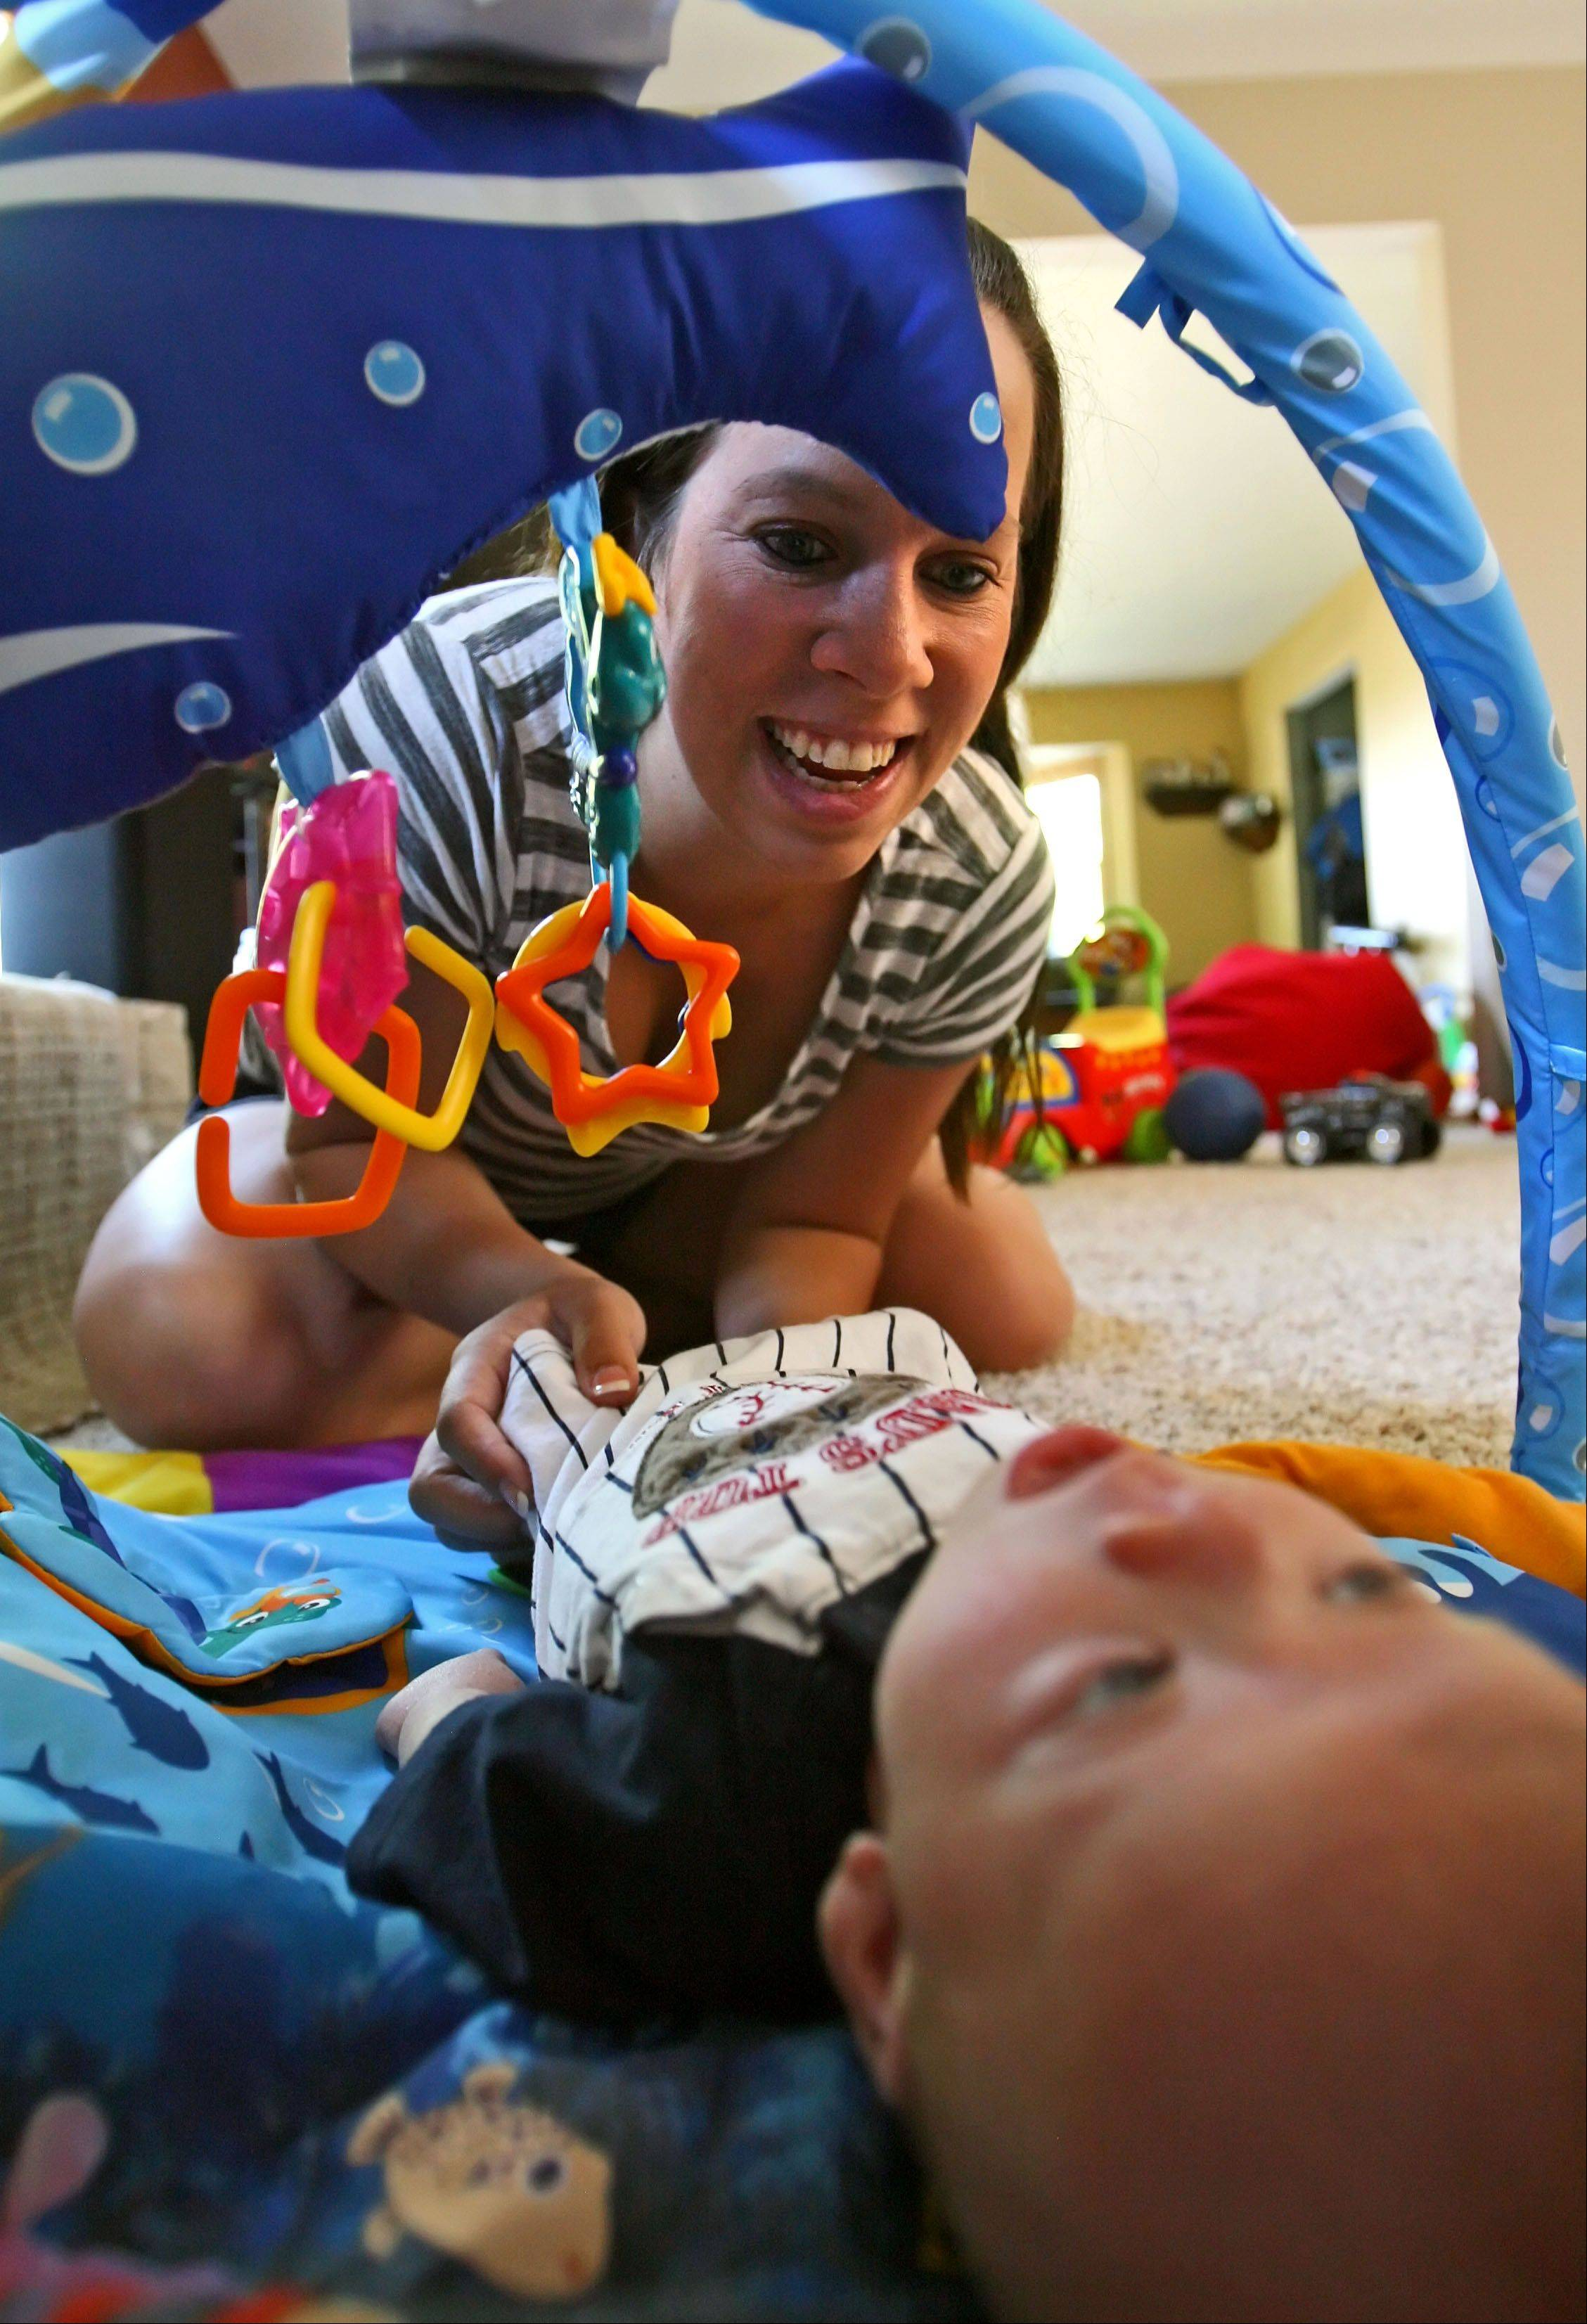 Katie Thorstenson of Wauconda plays with her 2-month-old baby, Drew, who has Noonan Syndrome.